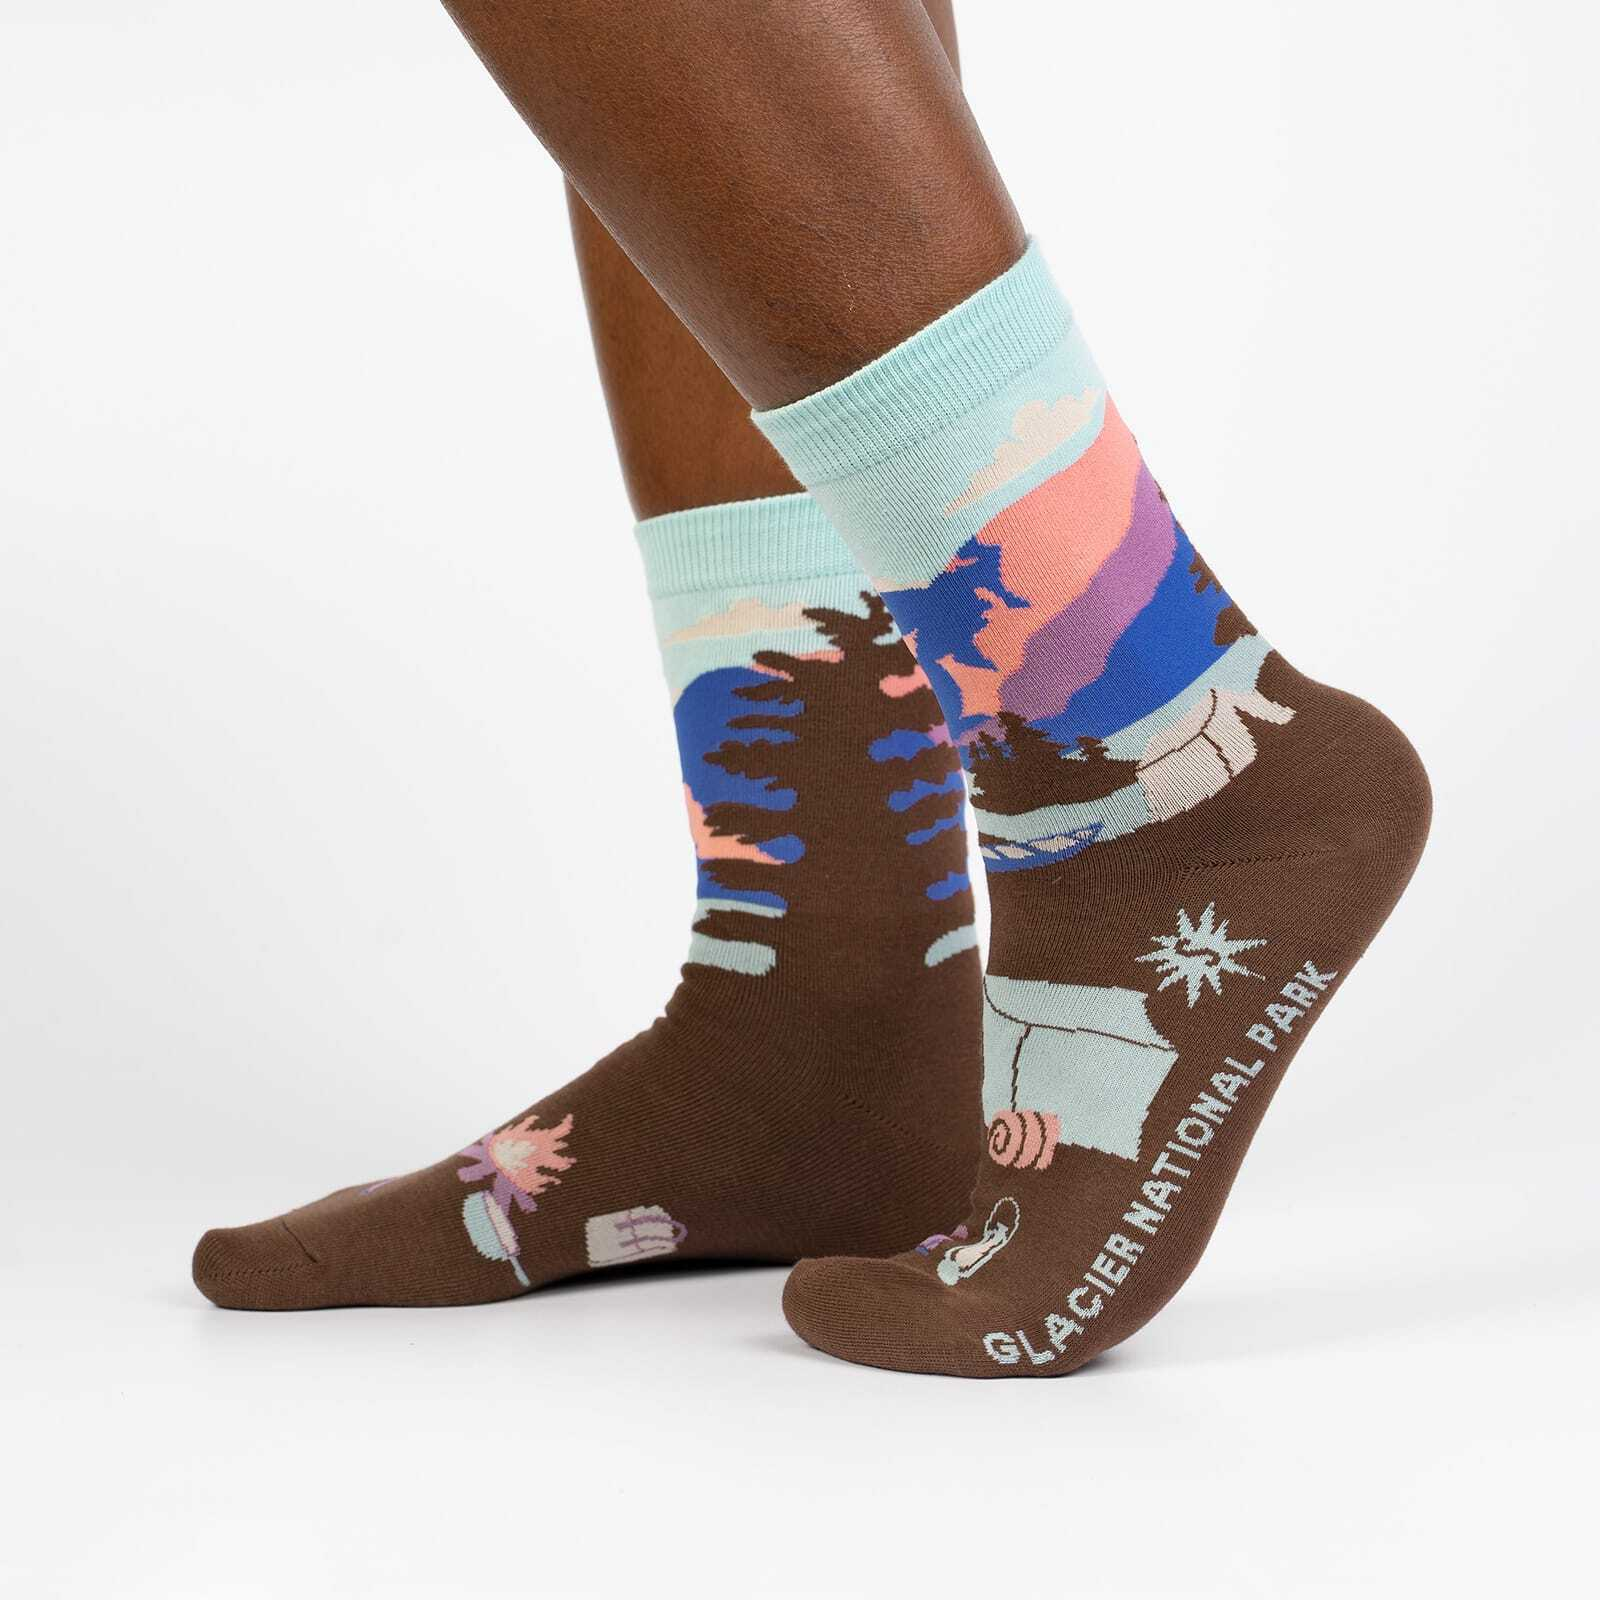 Glacier National Park - Road Trip Travel Crew Socks Brown - Women's in Brown